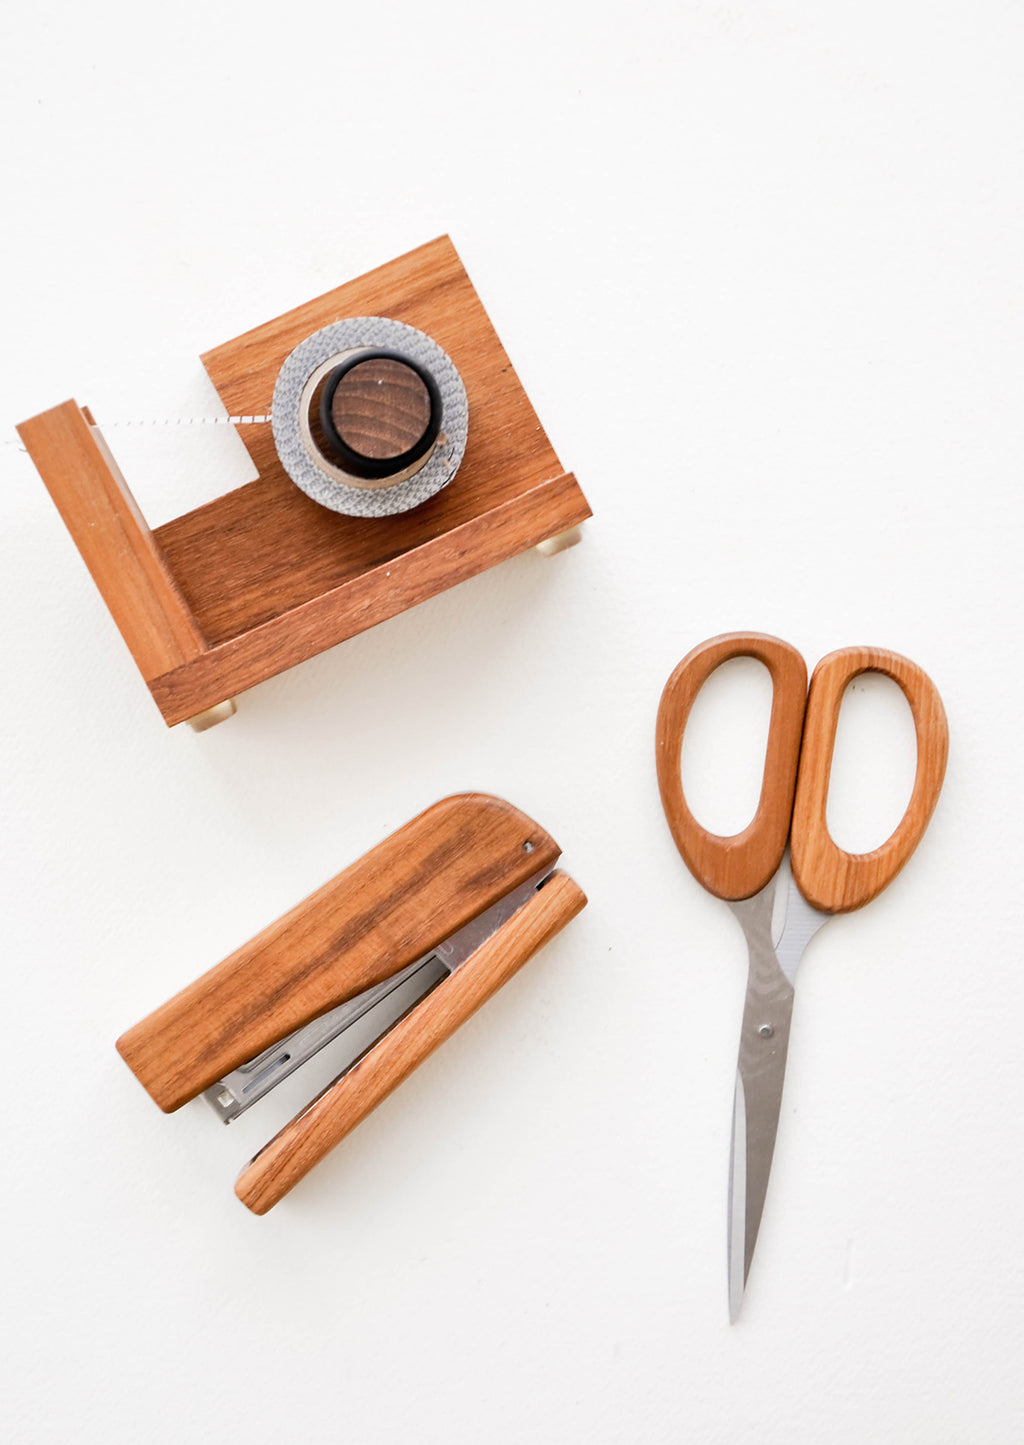 1: Product shot showing teakwood tape dispenser, scissors and stapler.